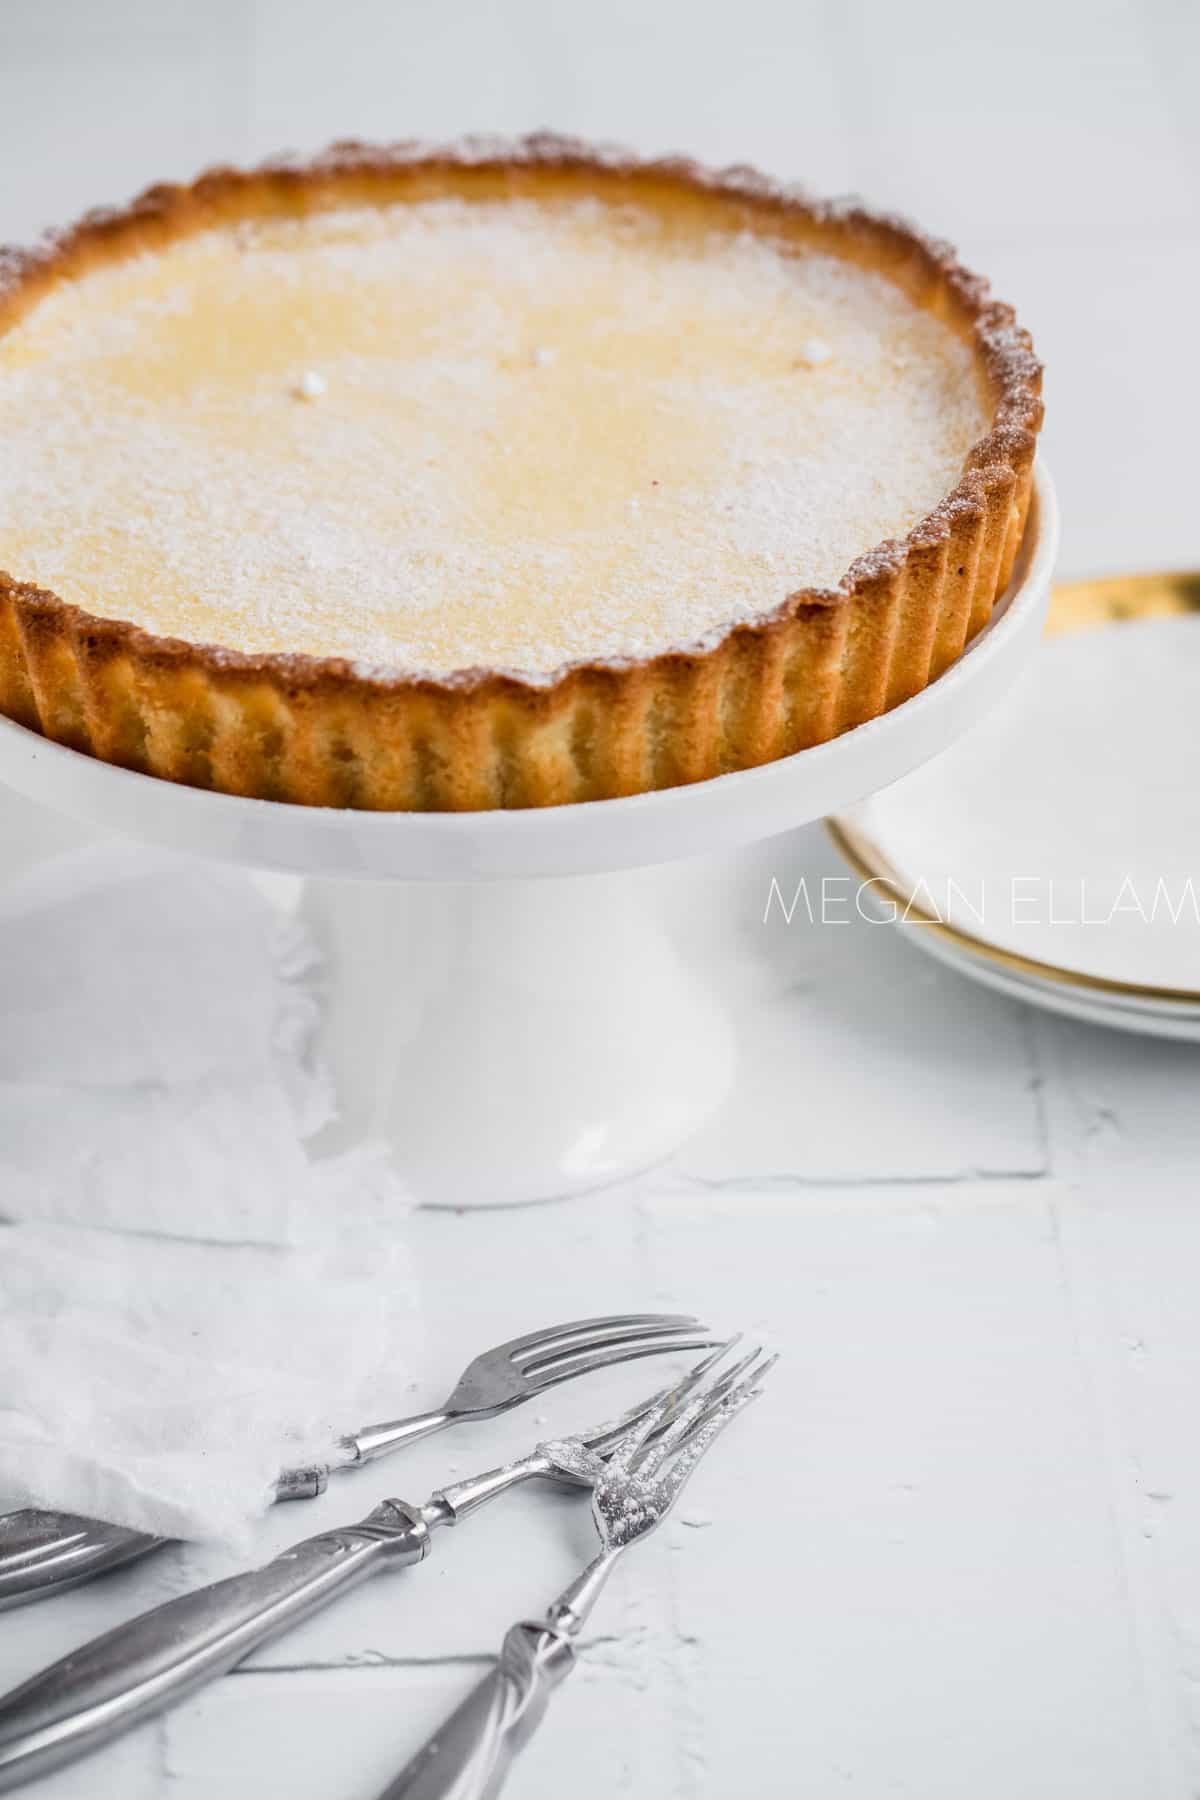 Almond flour pie crust filled with custard on a cake stand.